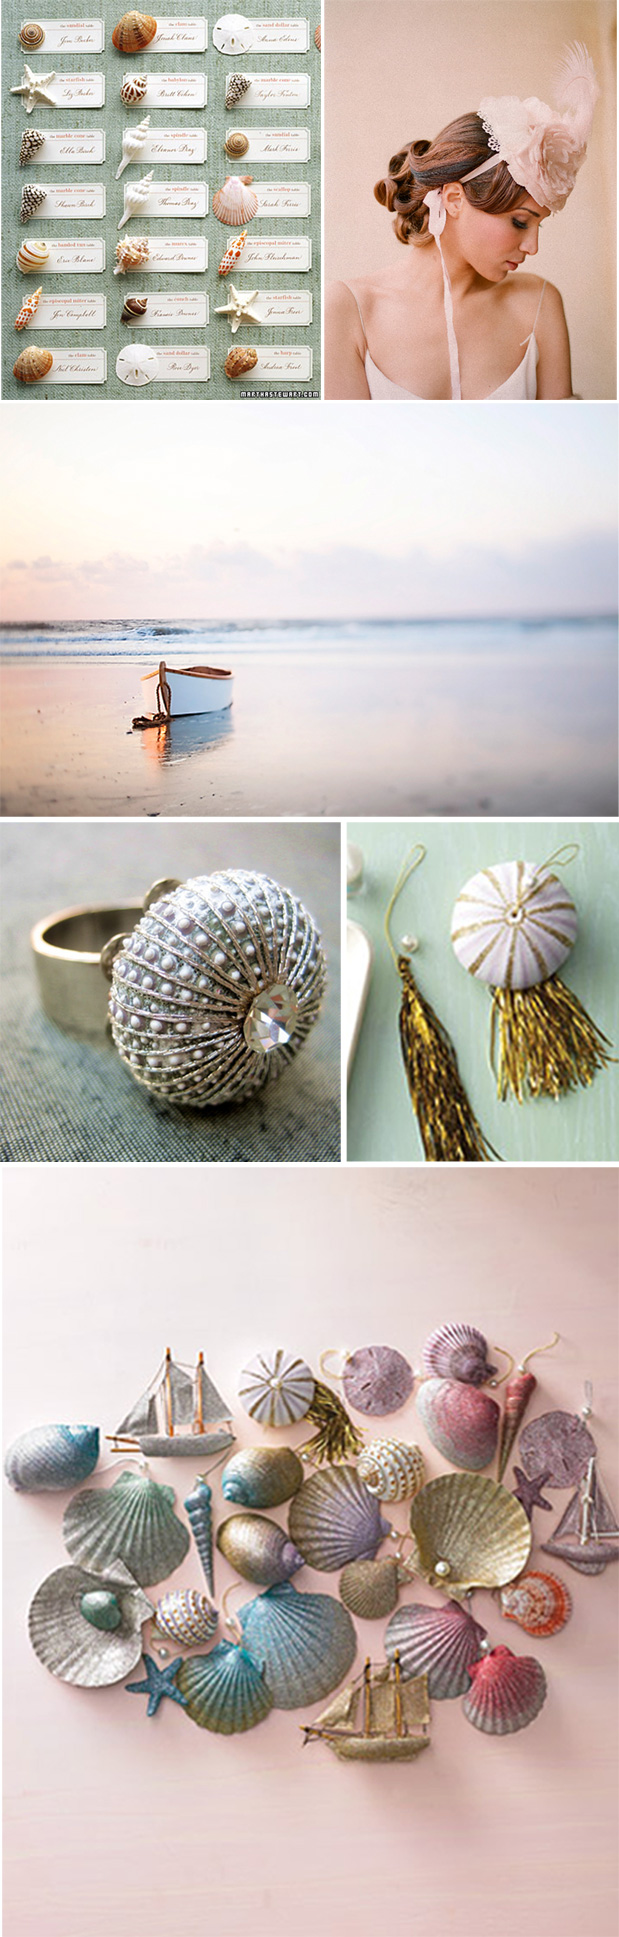 Wedding Blog Nautical Glam: Glittering Up Your Beach Wedding